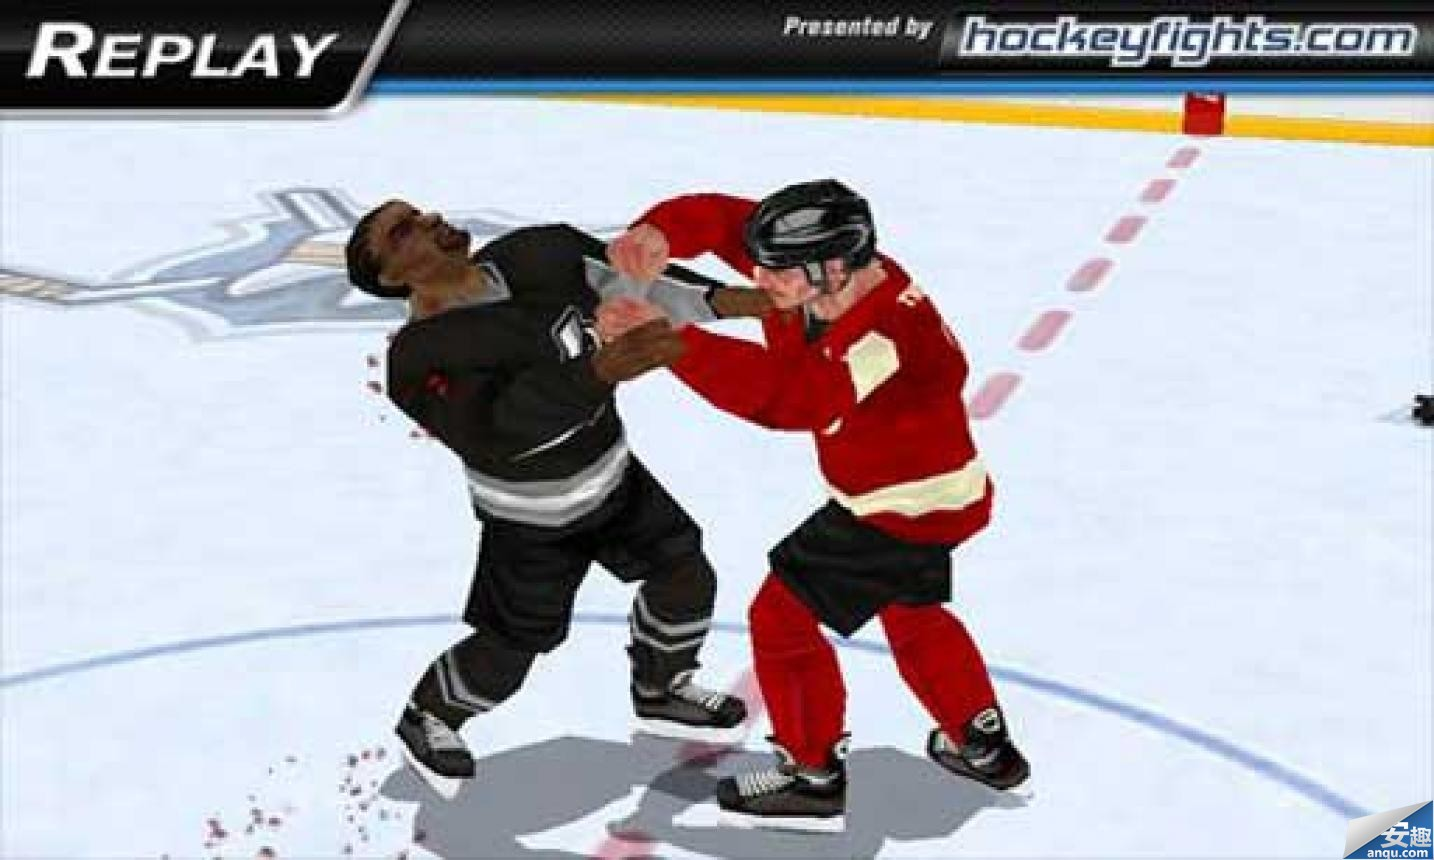 Hockey Fight_4